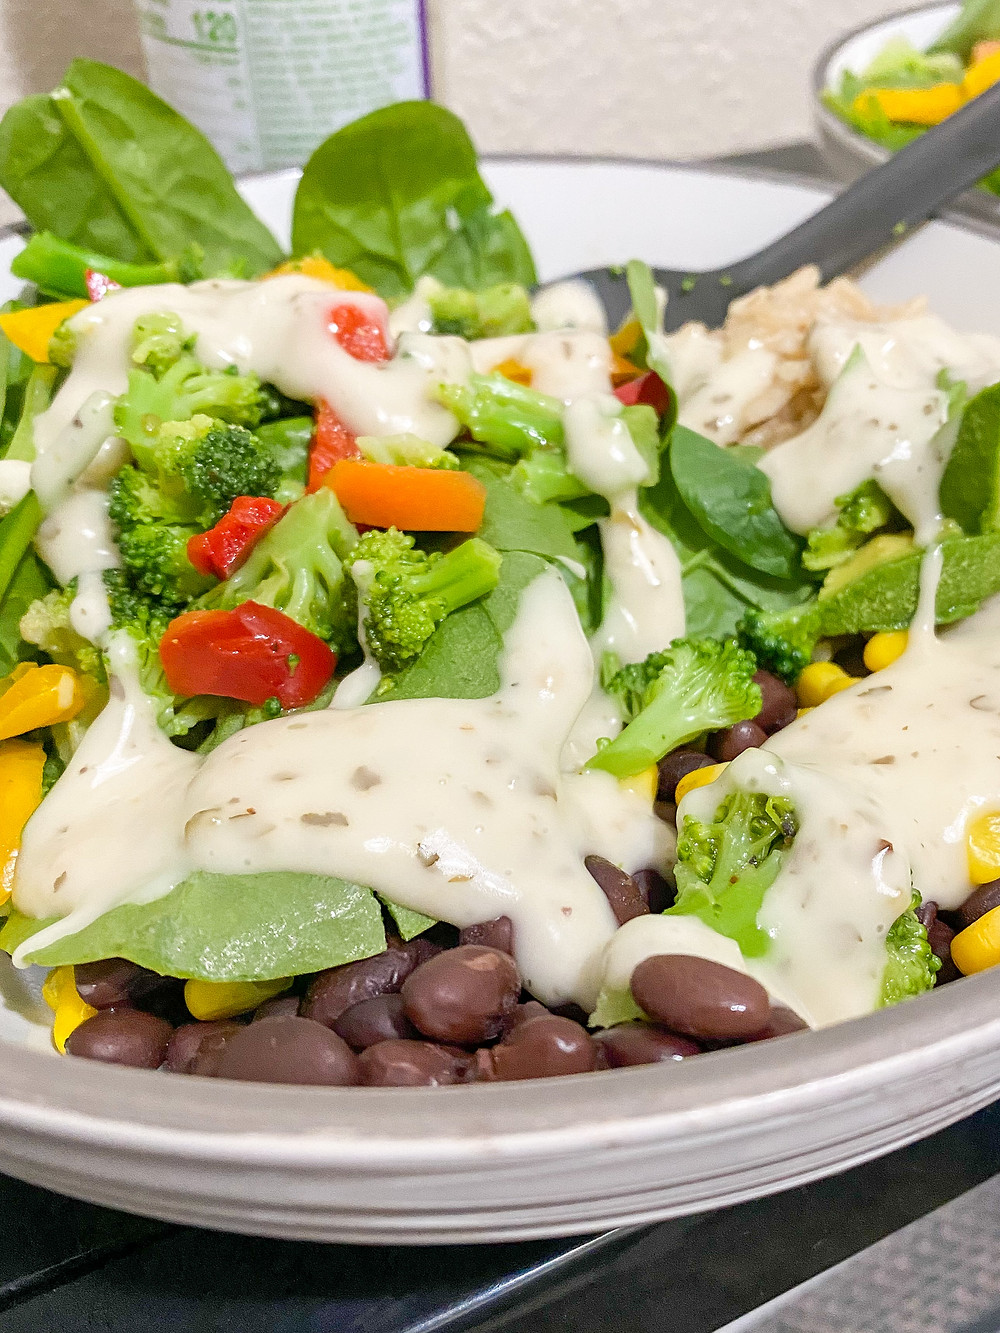 Warm grain salad bowls featuring rice, beans, steamed veggies, corn, avocado, spinach, and ranch dressing.